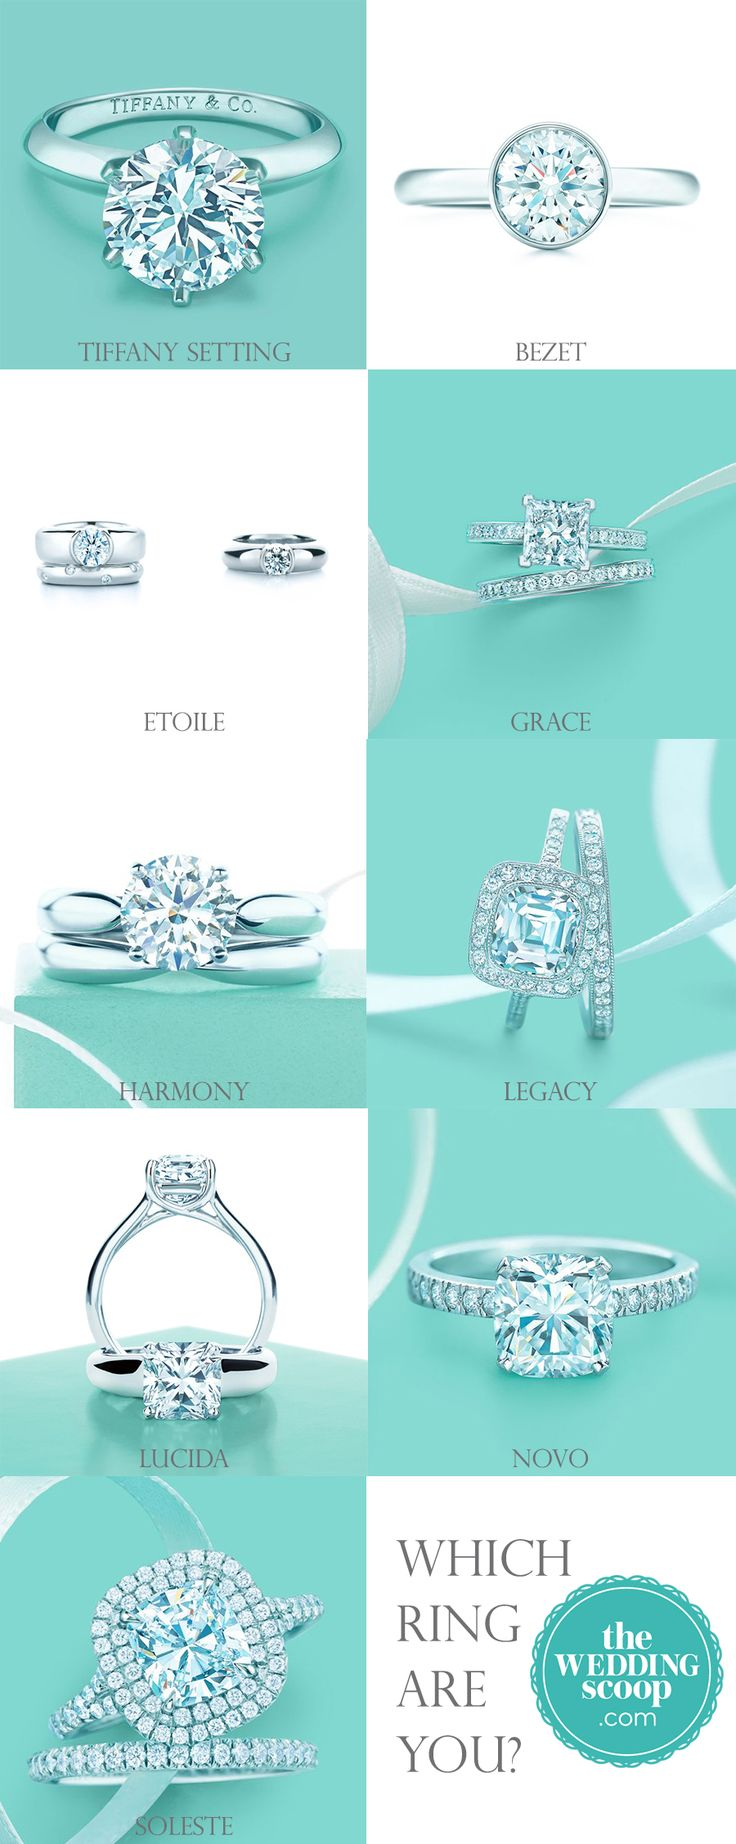 Find This Pin And More On Tiffany Or Tacori The Wedding Scoop's 8  Favourite Tiffany Engagement Rings